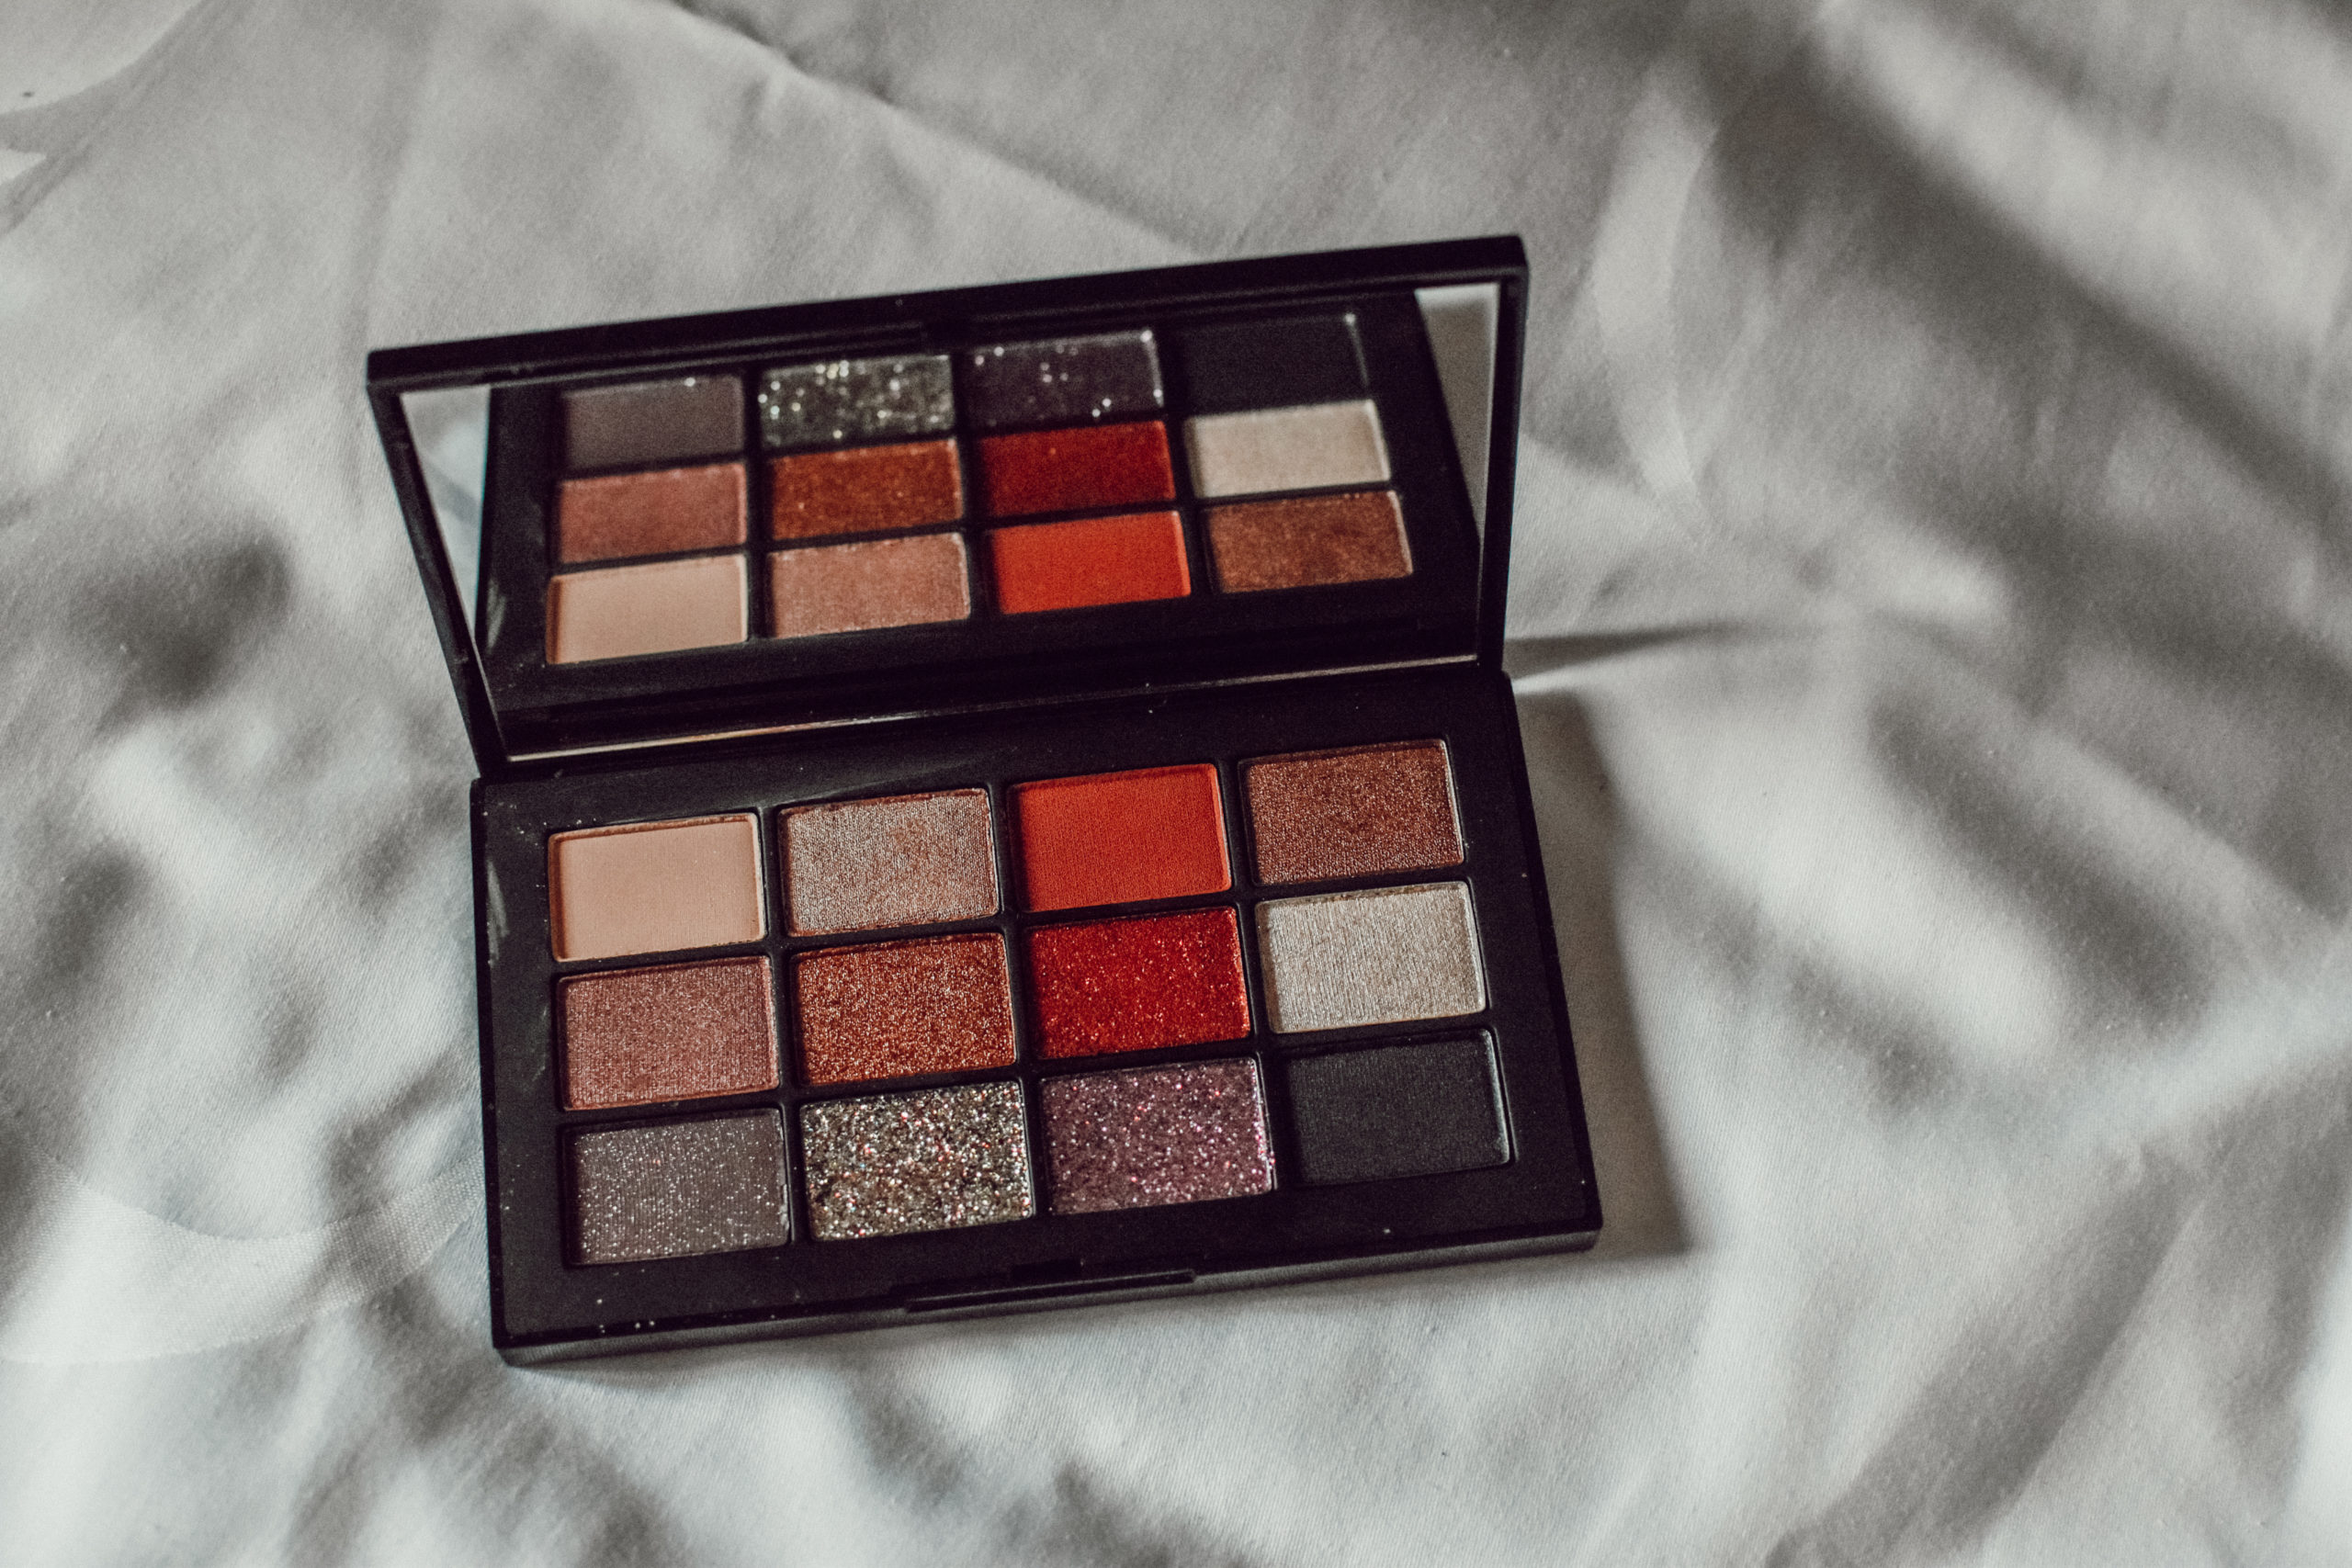 NARS Studio 54 - Inferno Eyeshadow Palette